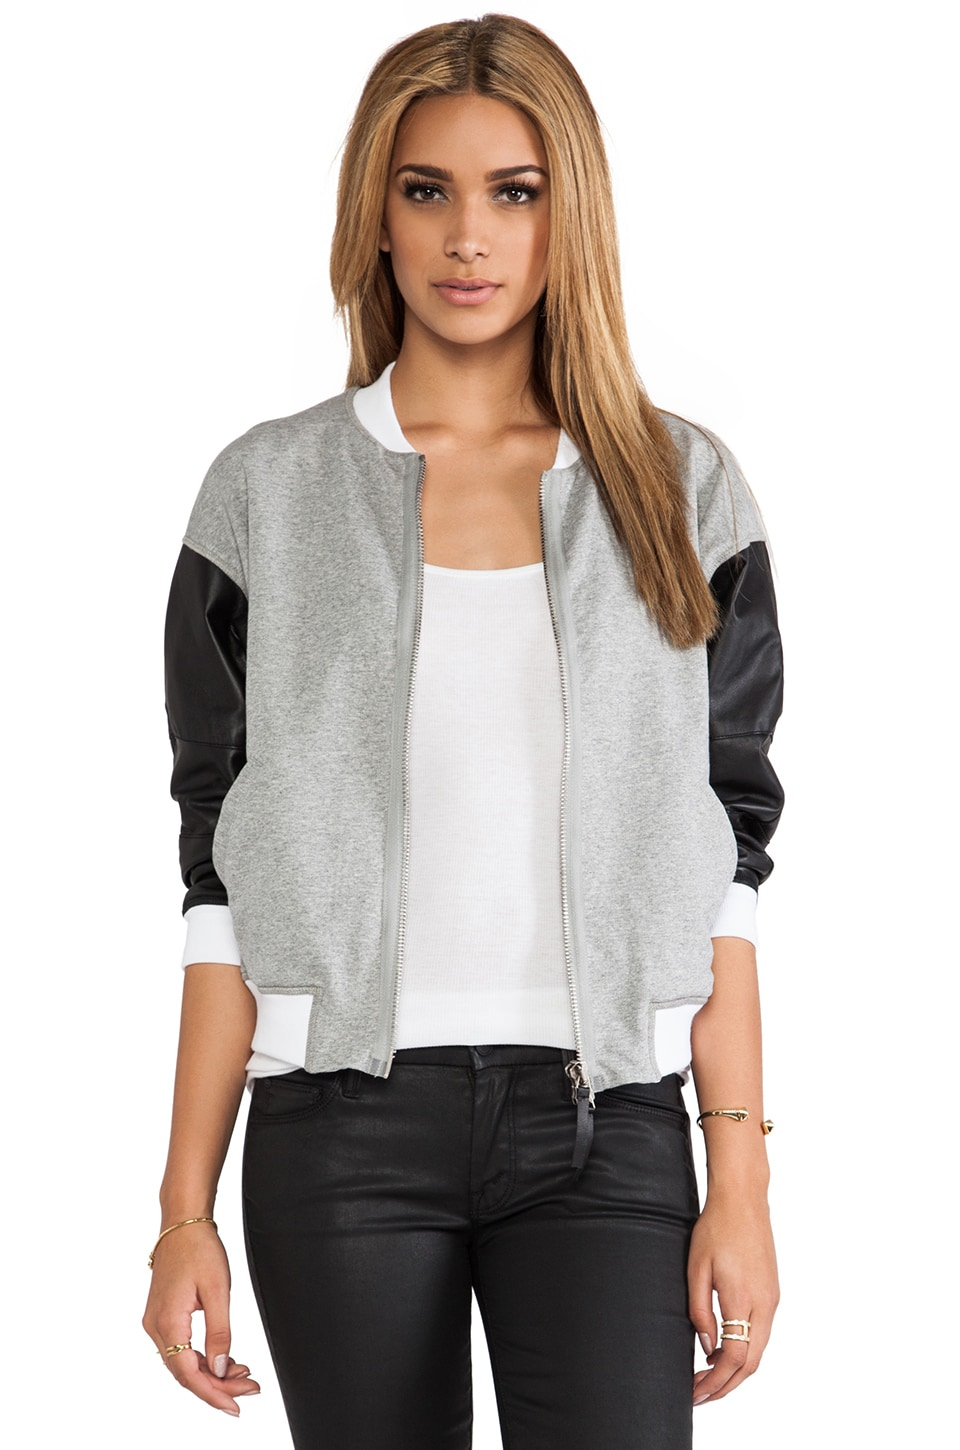 BROGDEN Bomber Jacket in Black & White